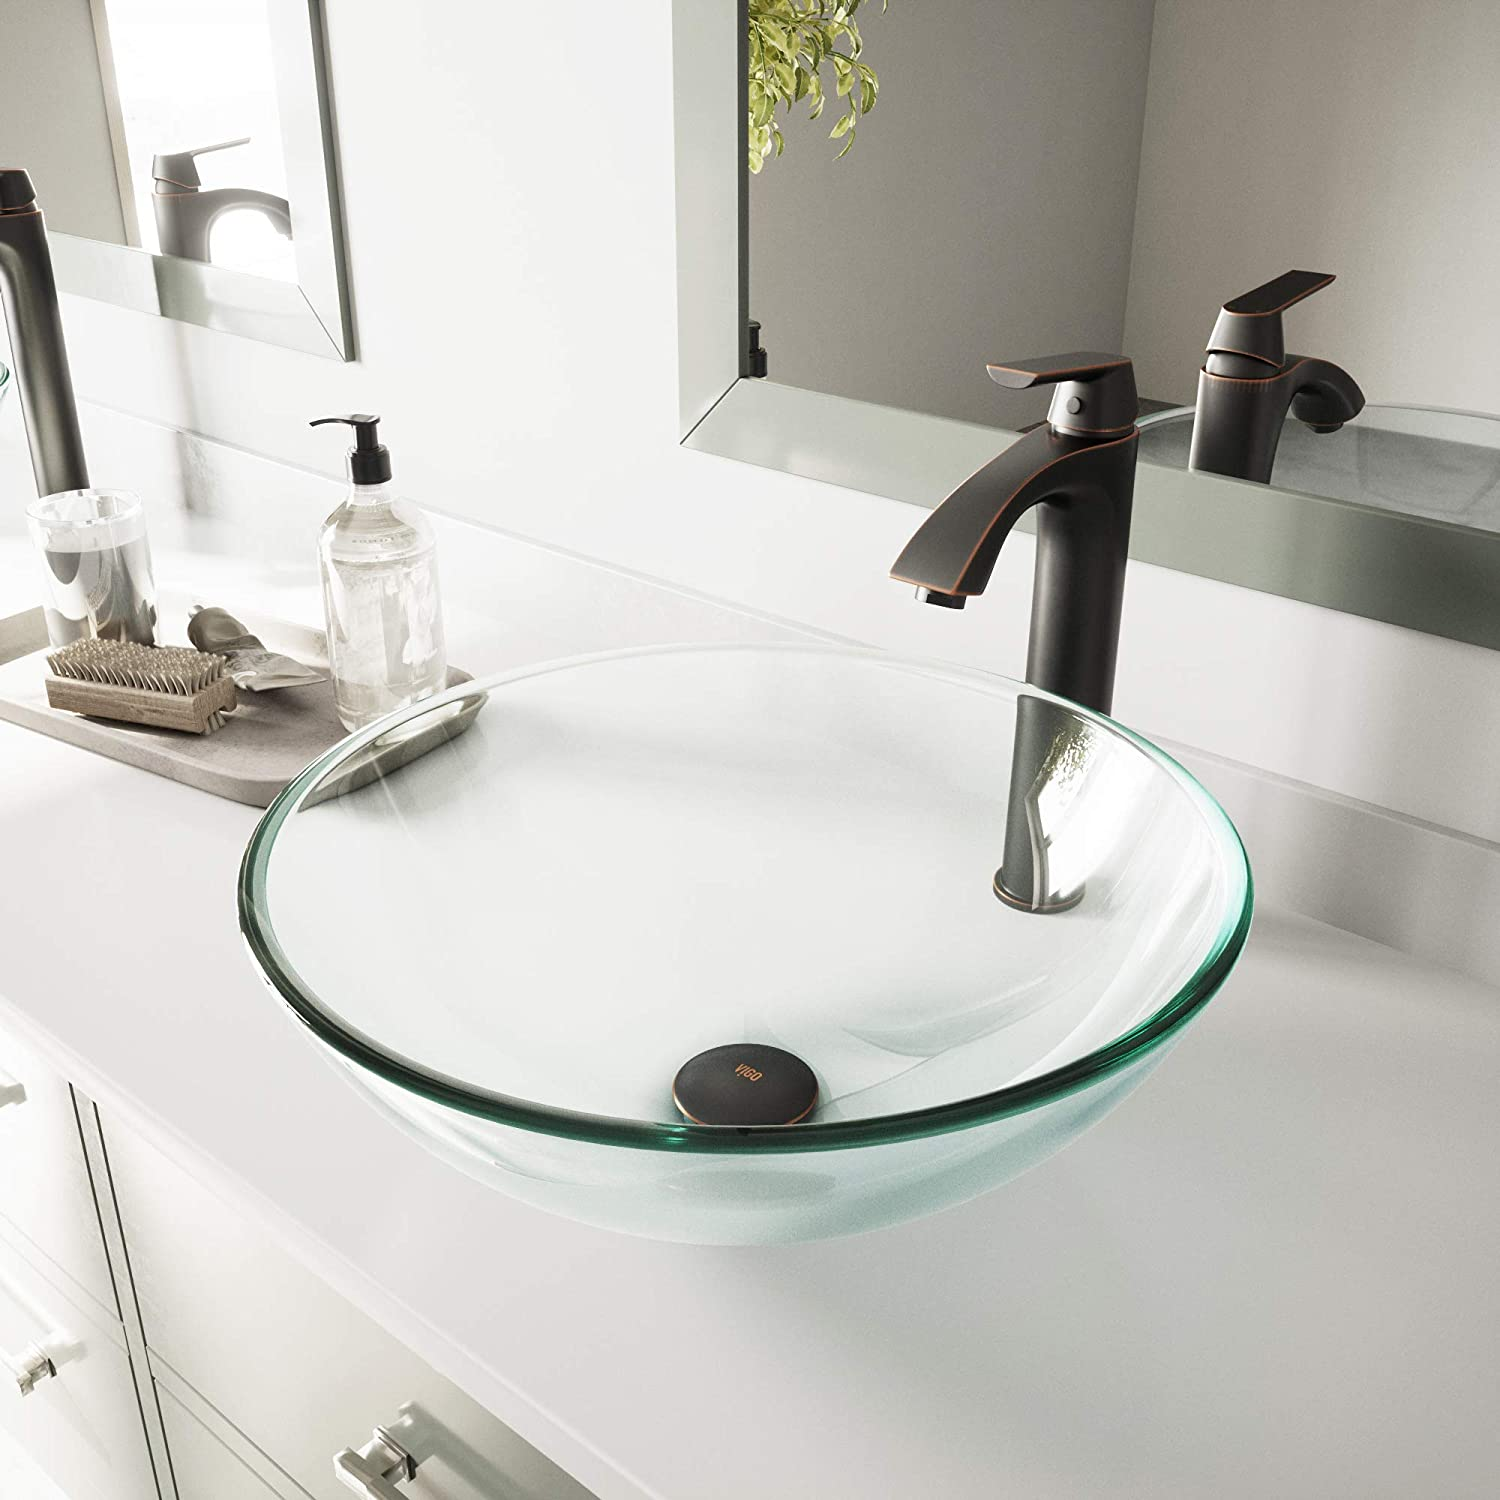 VIGO VG07074 Glass Above counter Round Bathroom Sink, 16.5 x 16.5 x 6 inches, Clear Crystalline